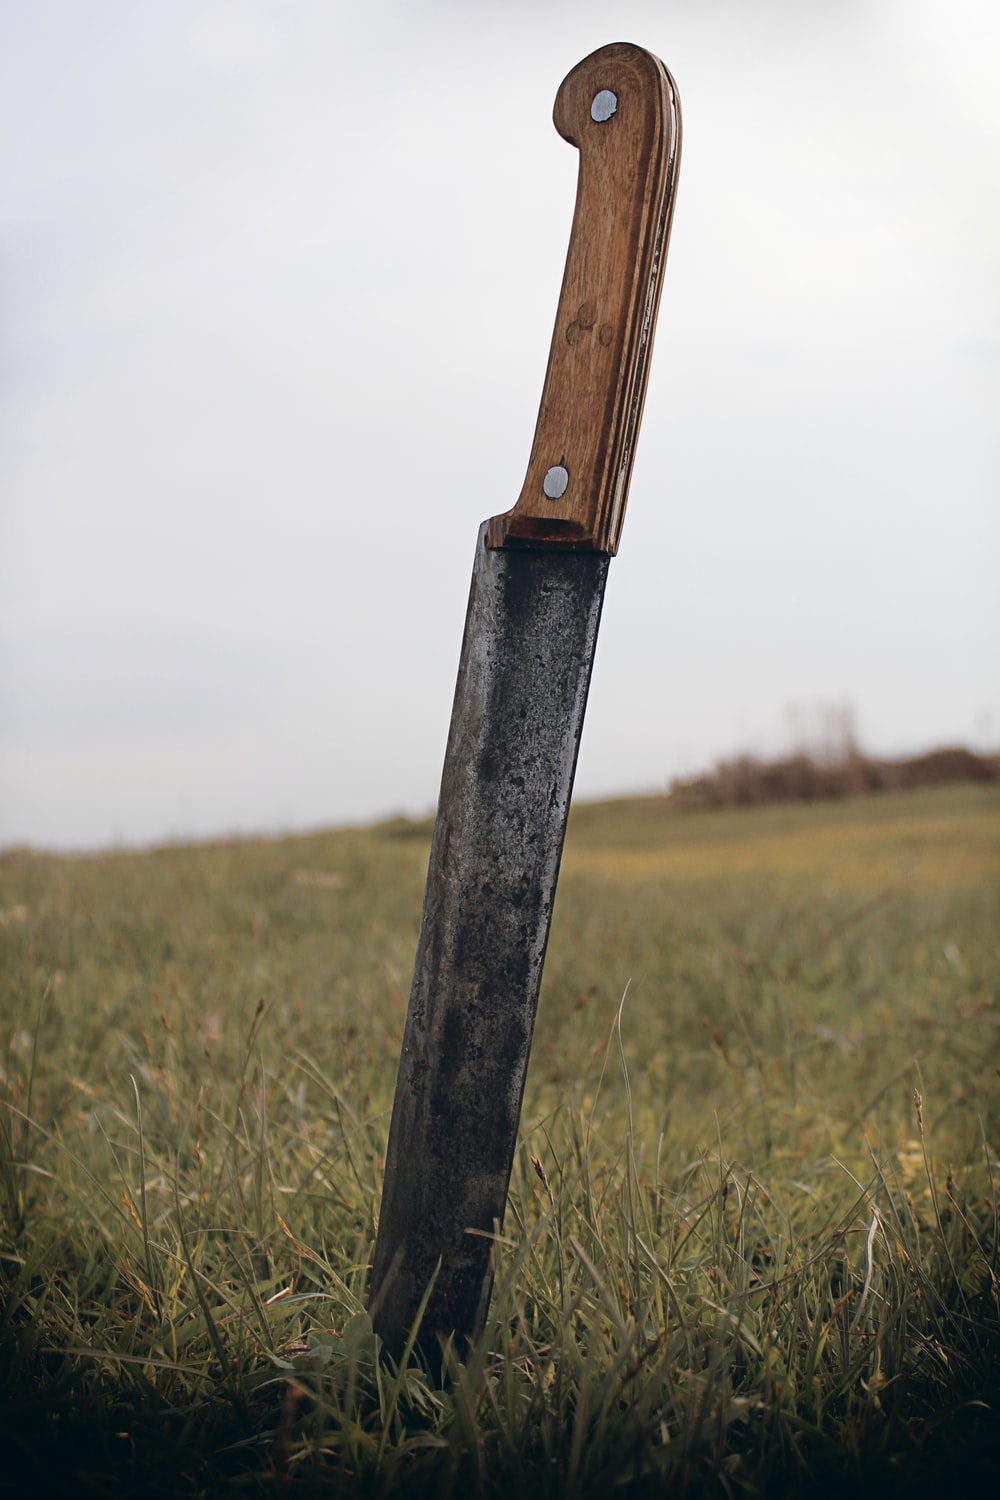 black handle knife on green grass field during daytime